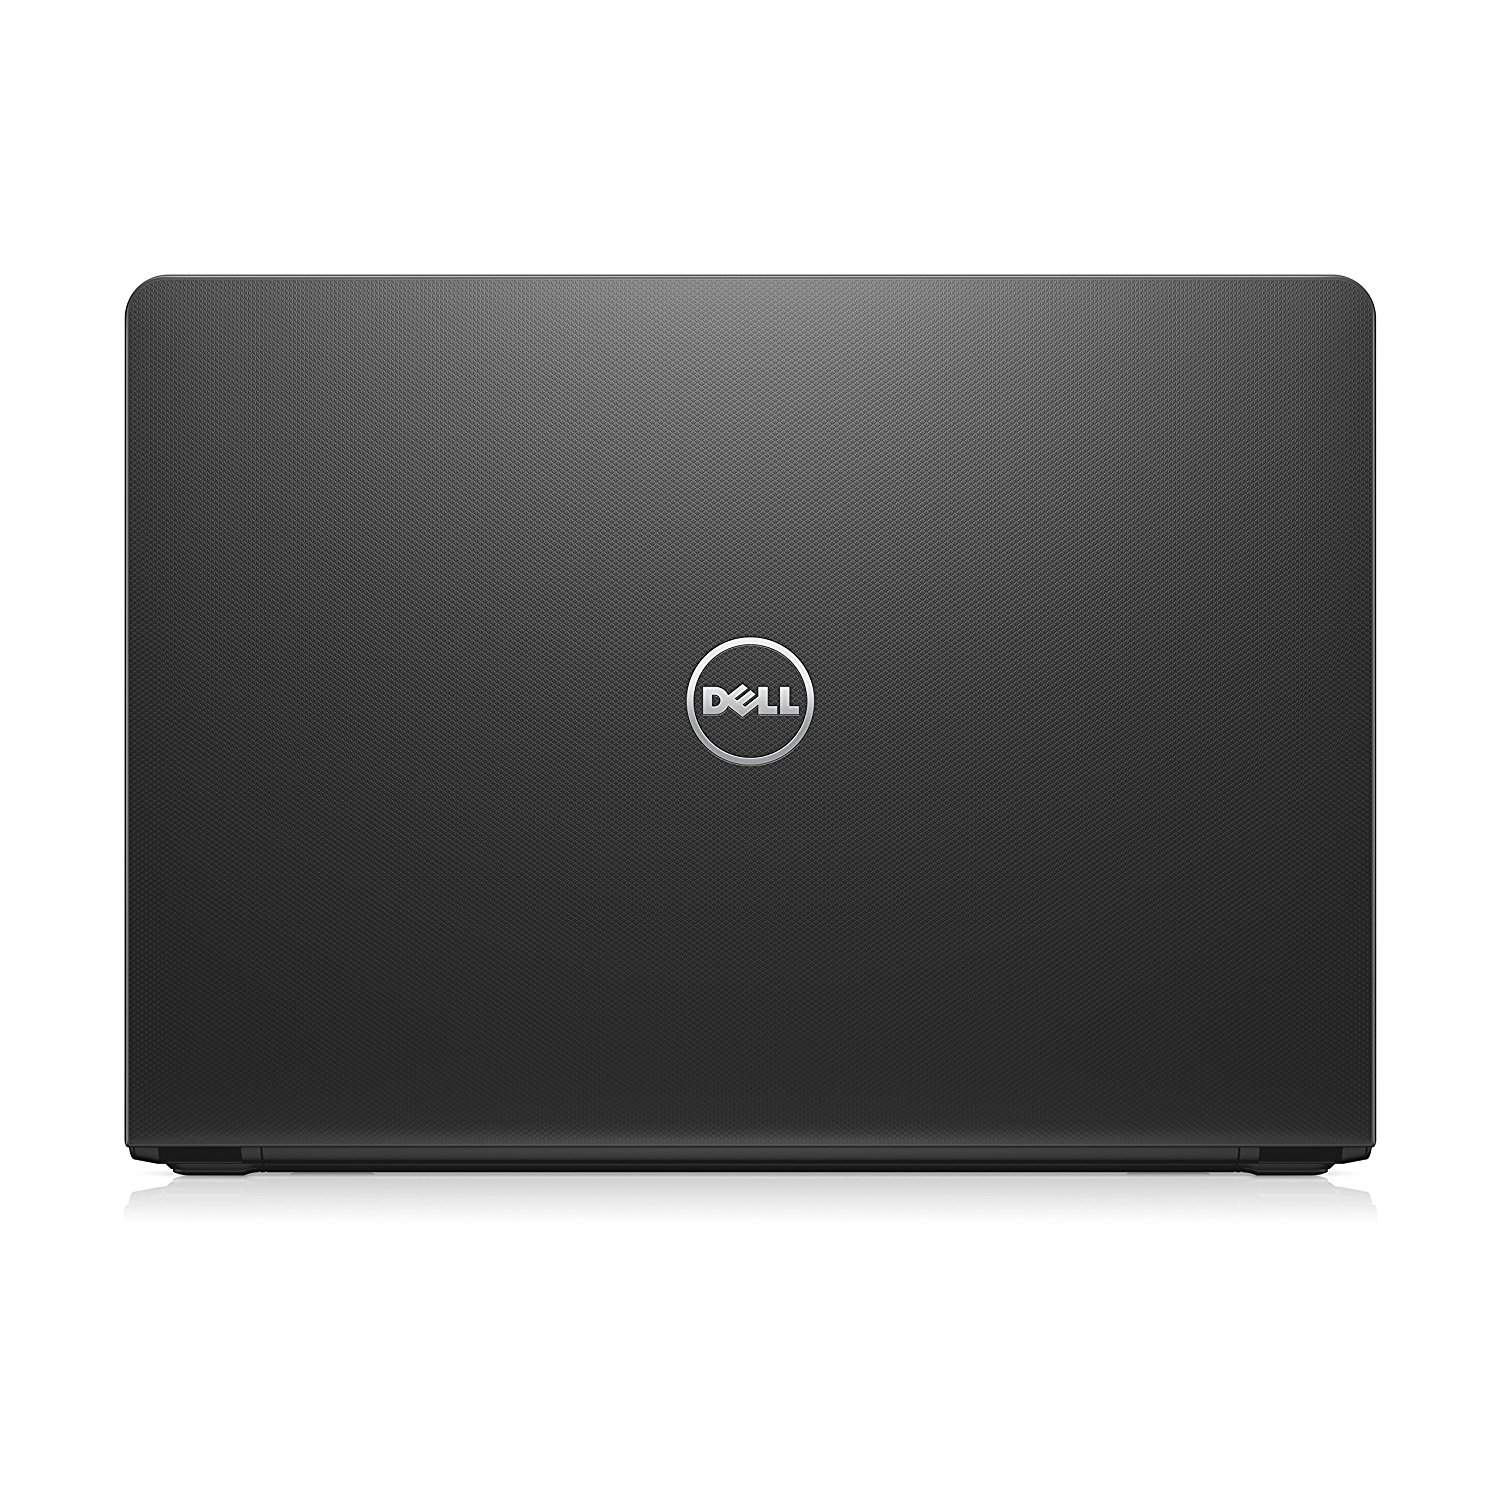 Dell 3468 35.6 Cm (14) Laptop (4 GB, 1 TB, Intel Core I3, Ubuntu)